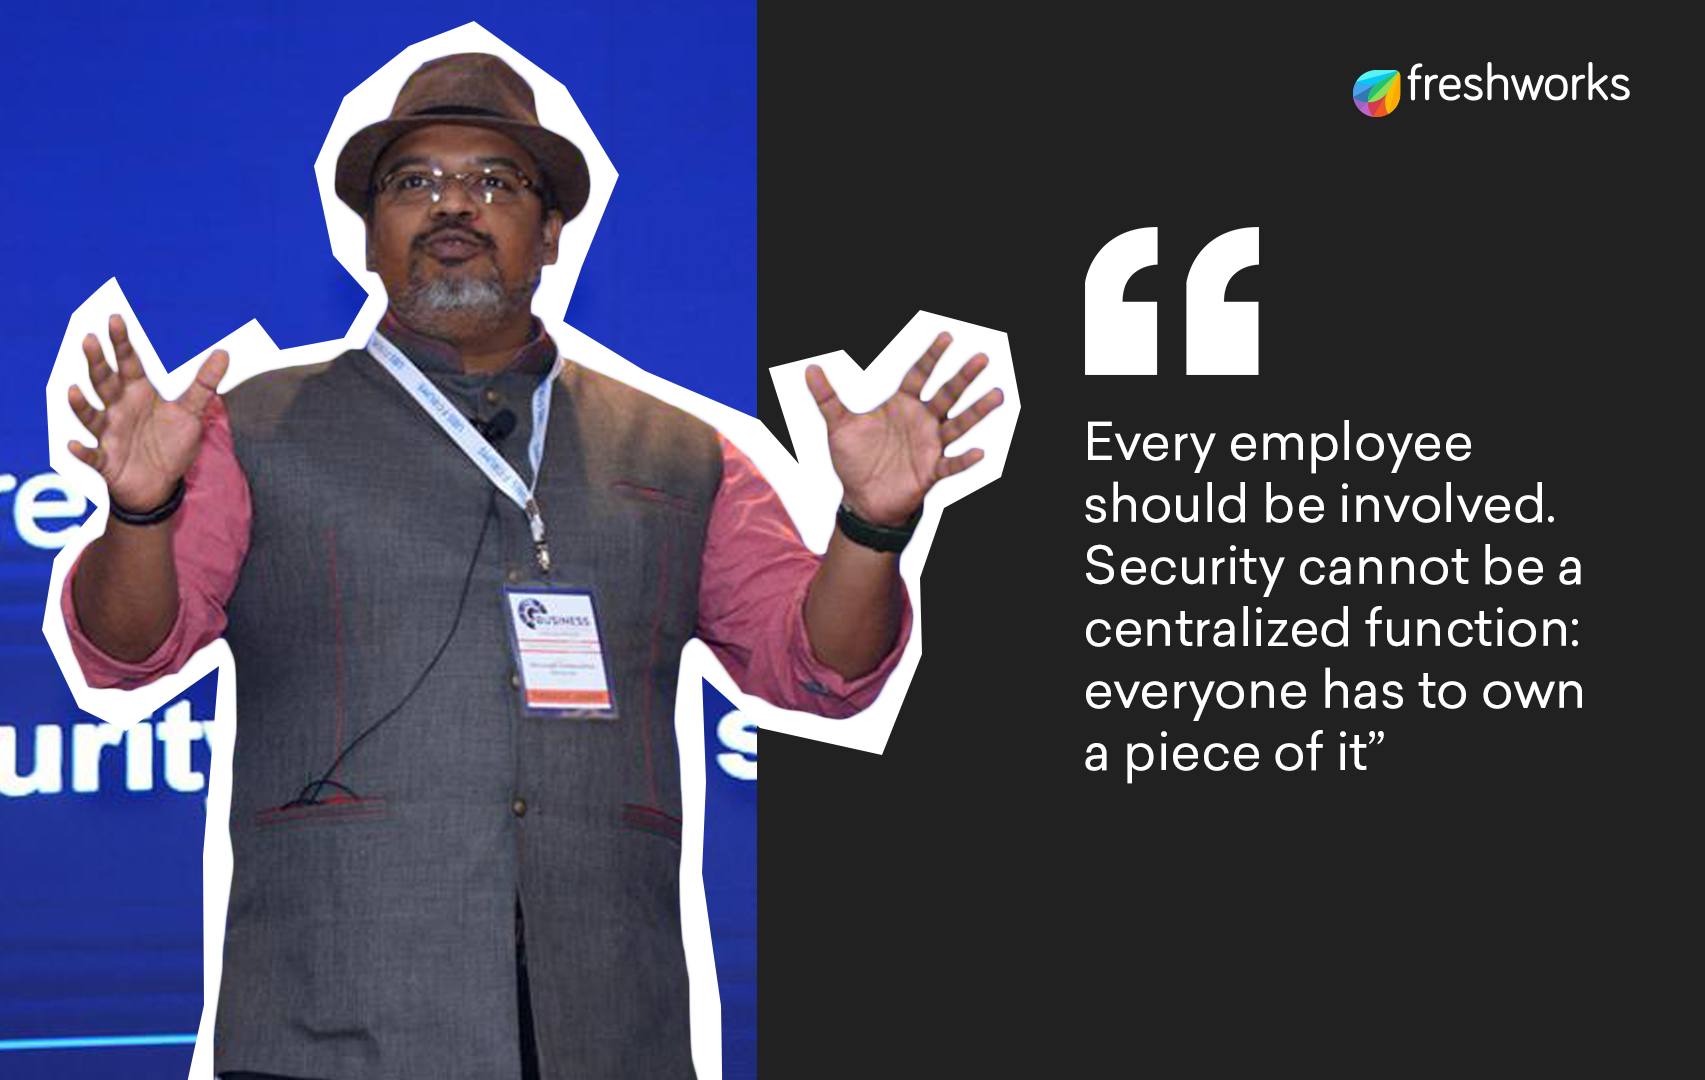 shiv-somanathan-every-employee-should-be-involved